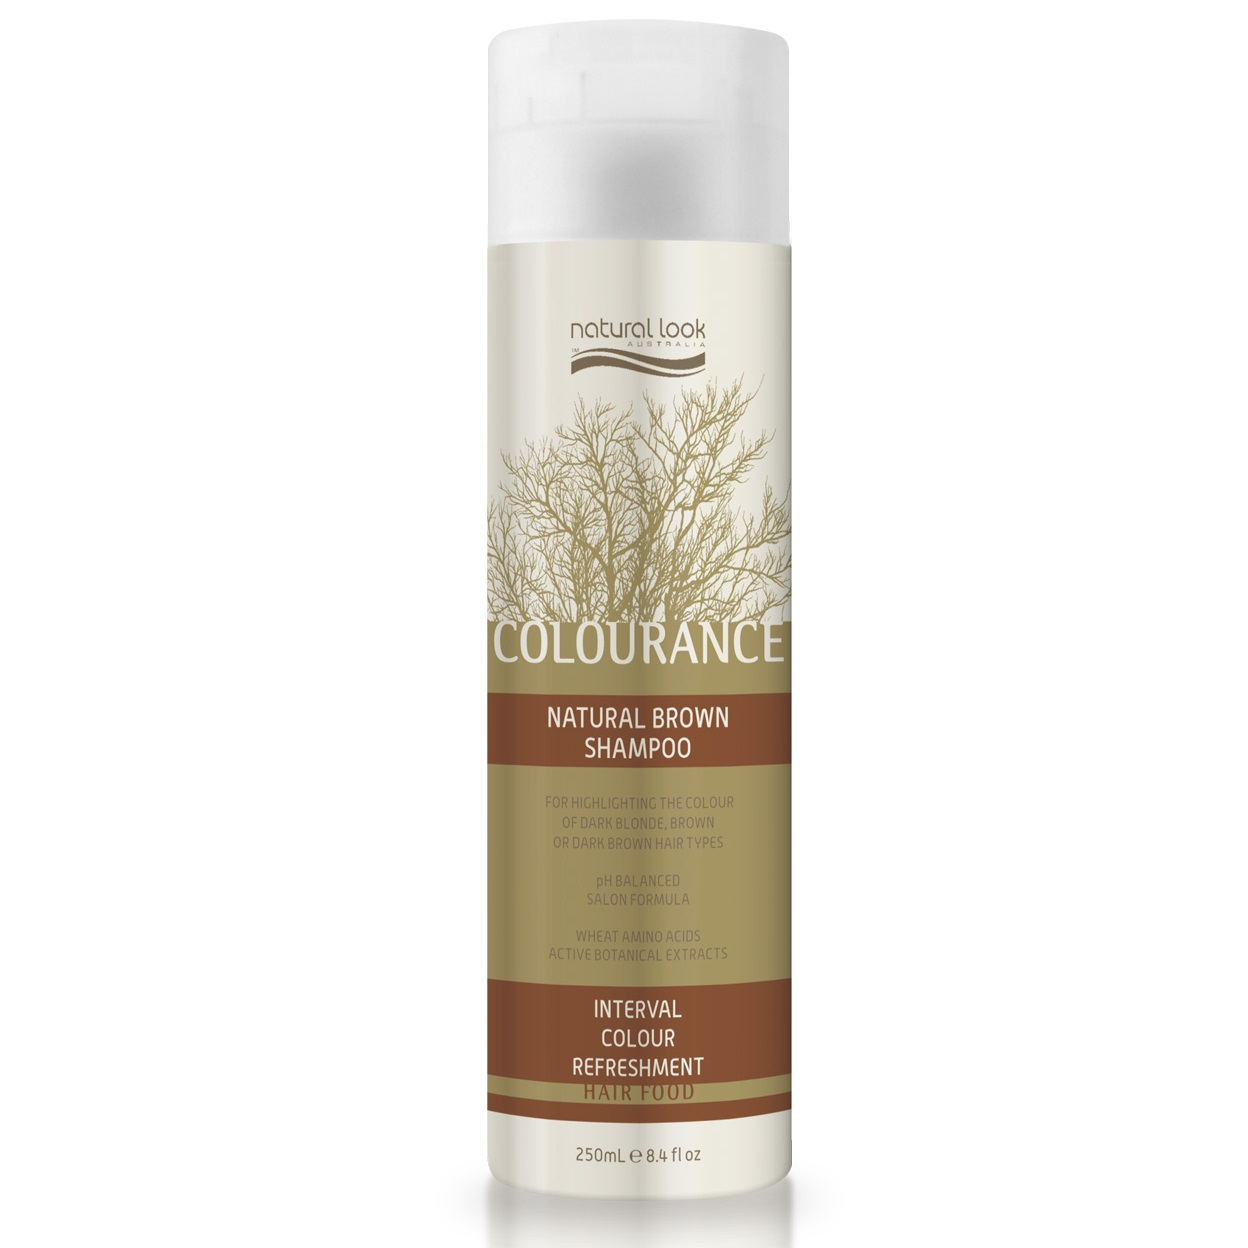 Natural Look Colourance Natural Brown Shampoo 250ml